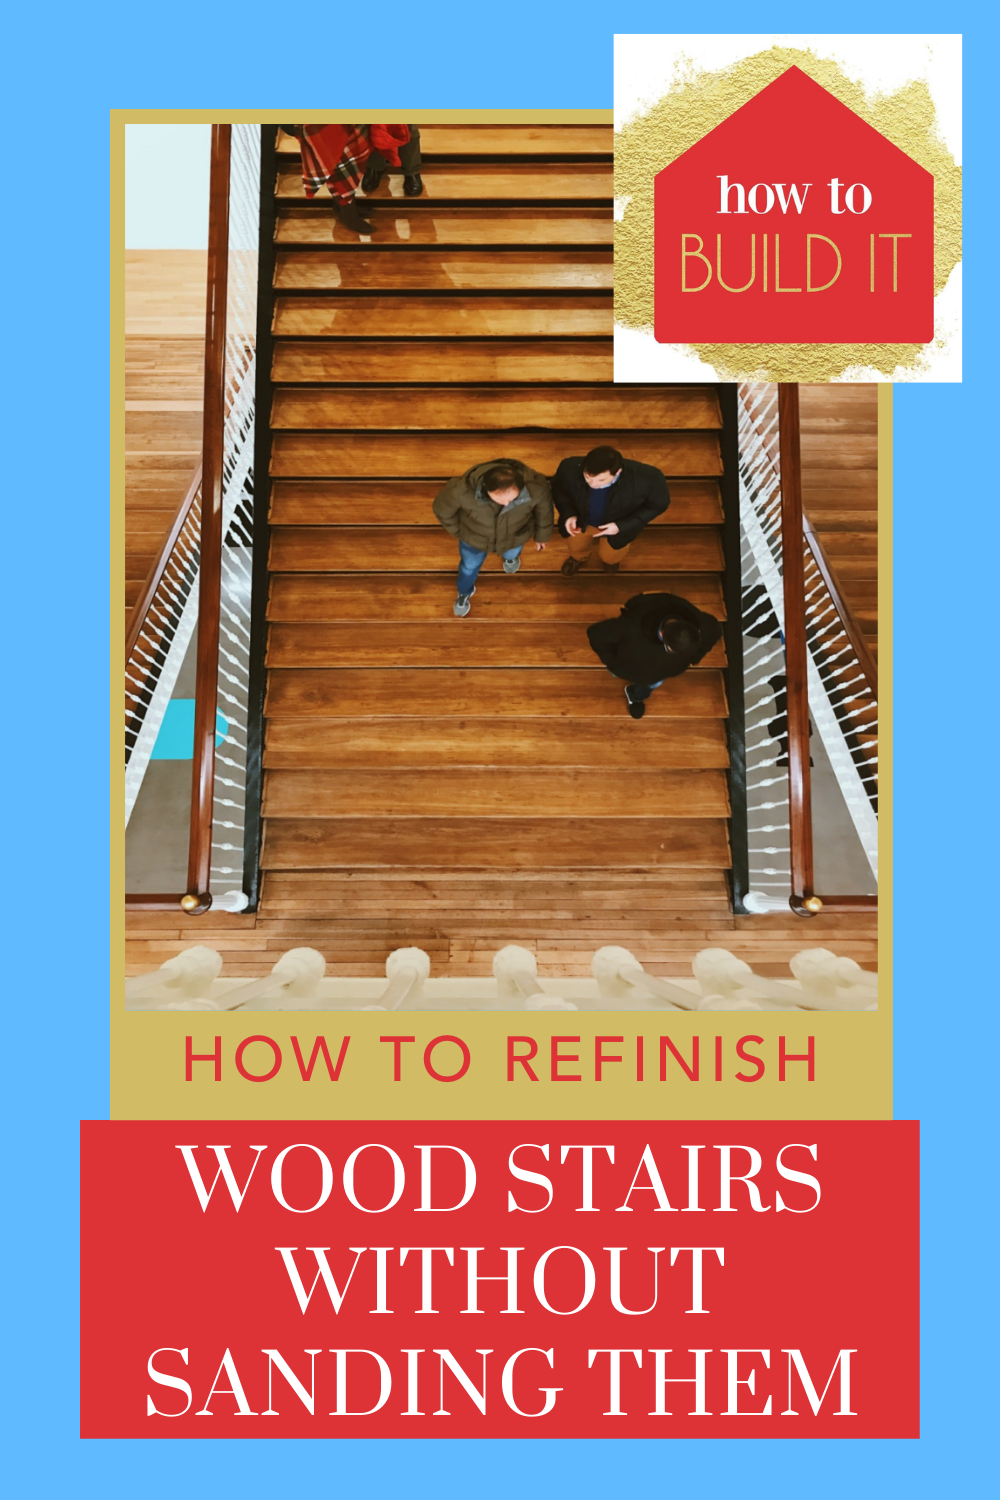 Howtobuildit.org is the ultimate resource for home improvement and DIY projects! Give your stairs a quick and seamless upgrade! Learn how to refinish your wood stairs without sanding them down!